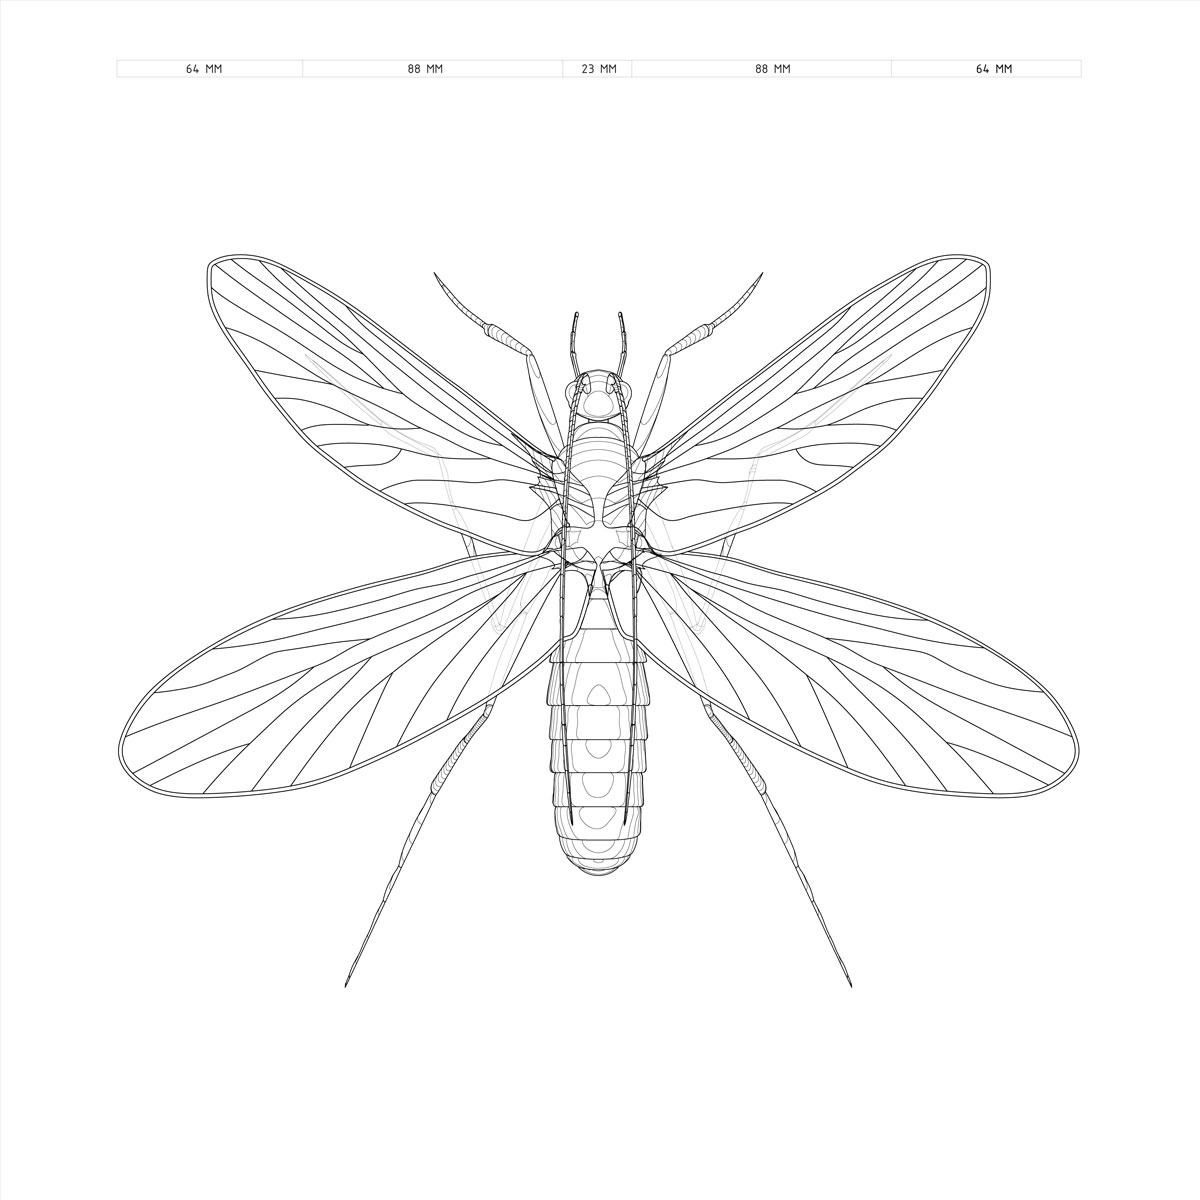 Firefly Insect Drawing at GetDrawings.com | Free for personal use ... for Firefly Drawing Scientific  131fsj